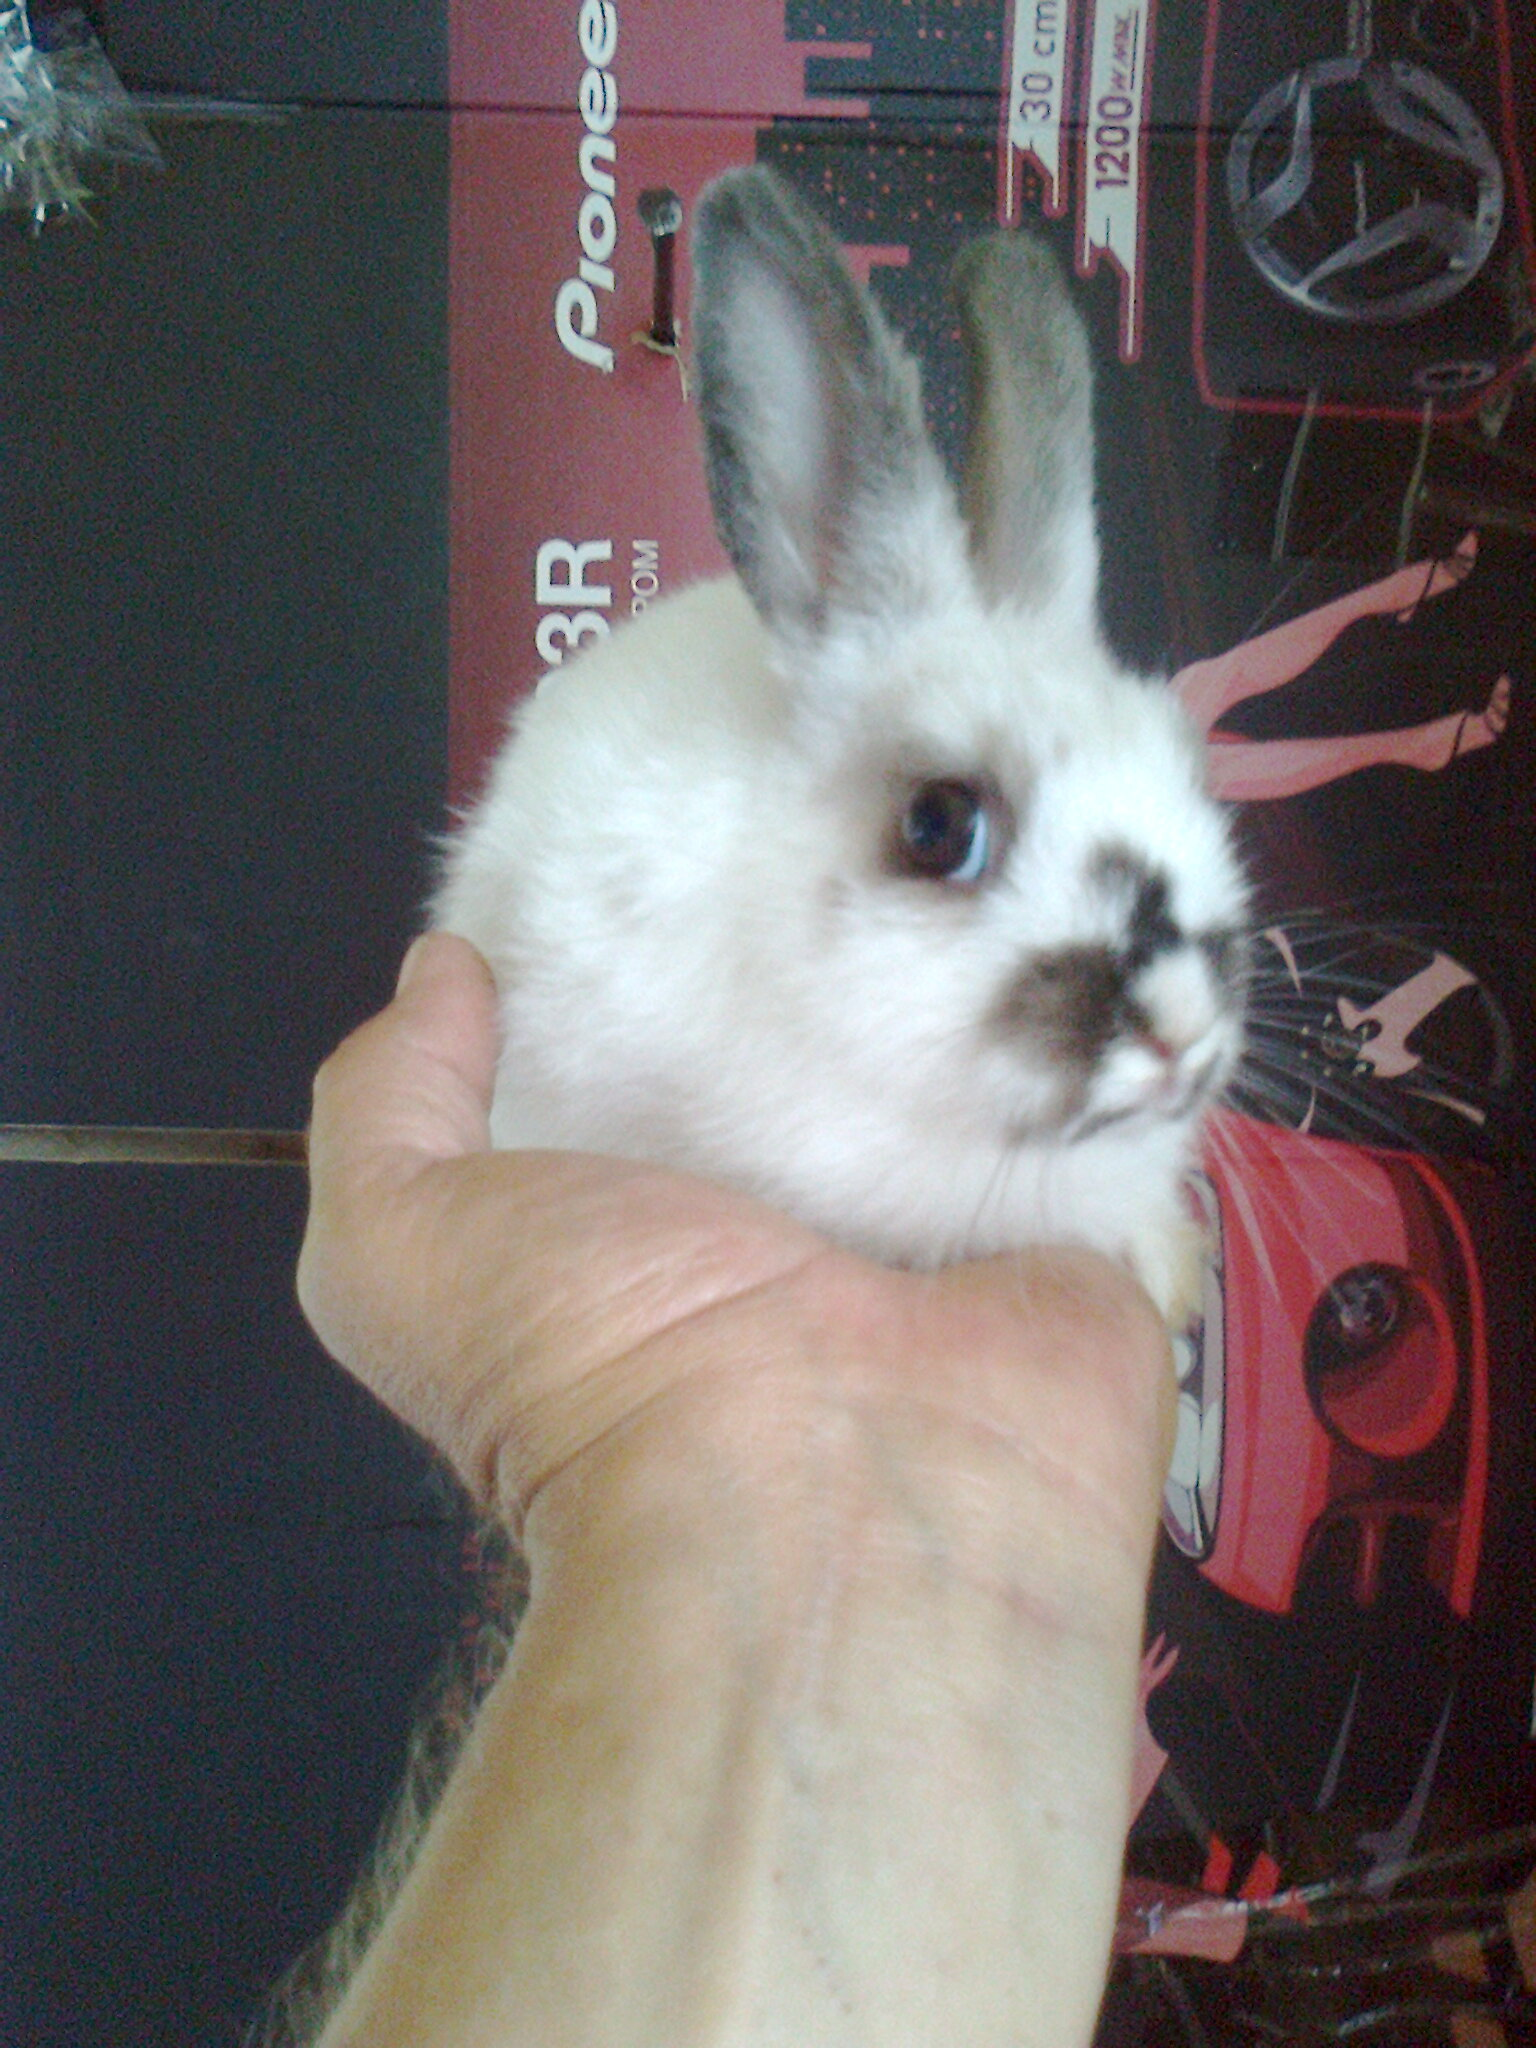 a dwarf rabbit. shipping. you can cage